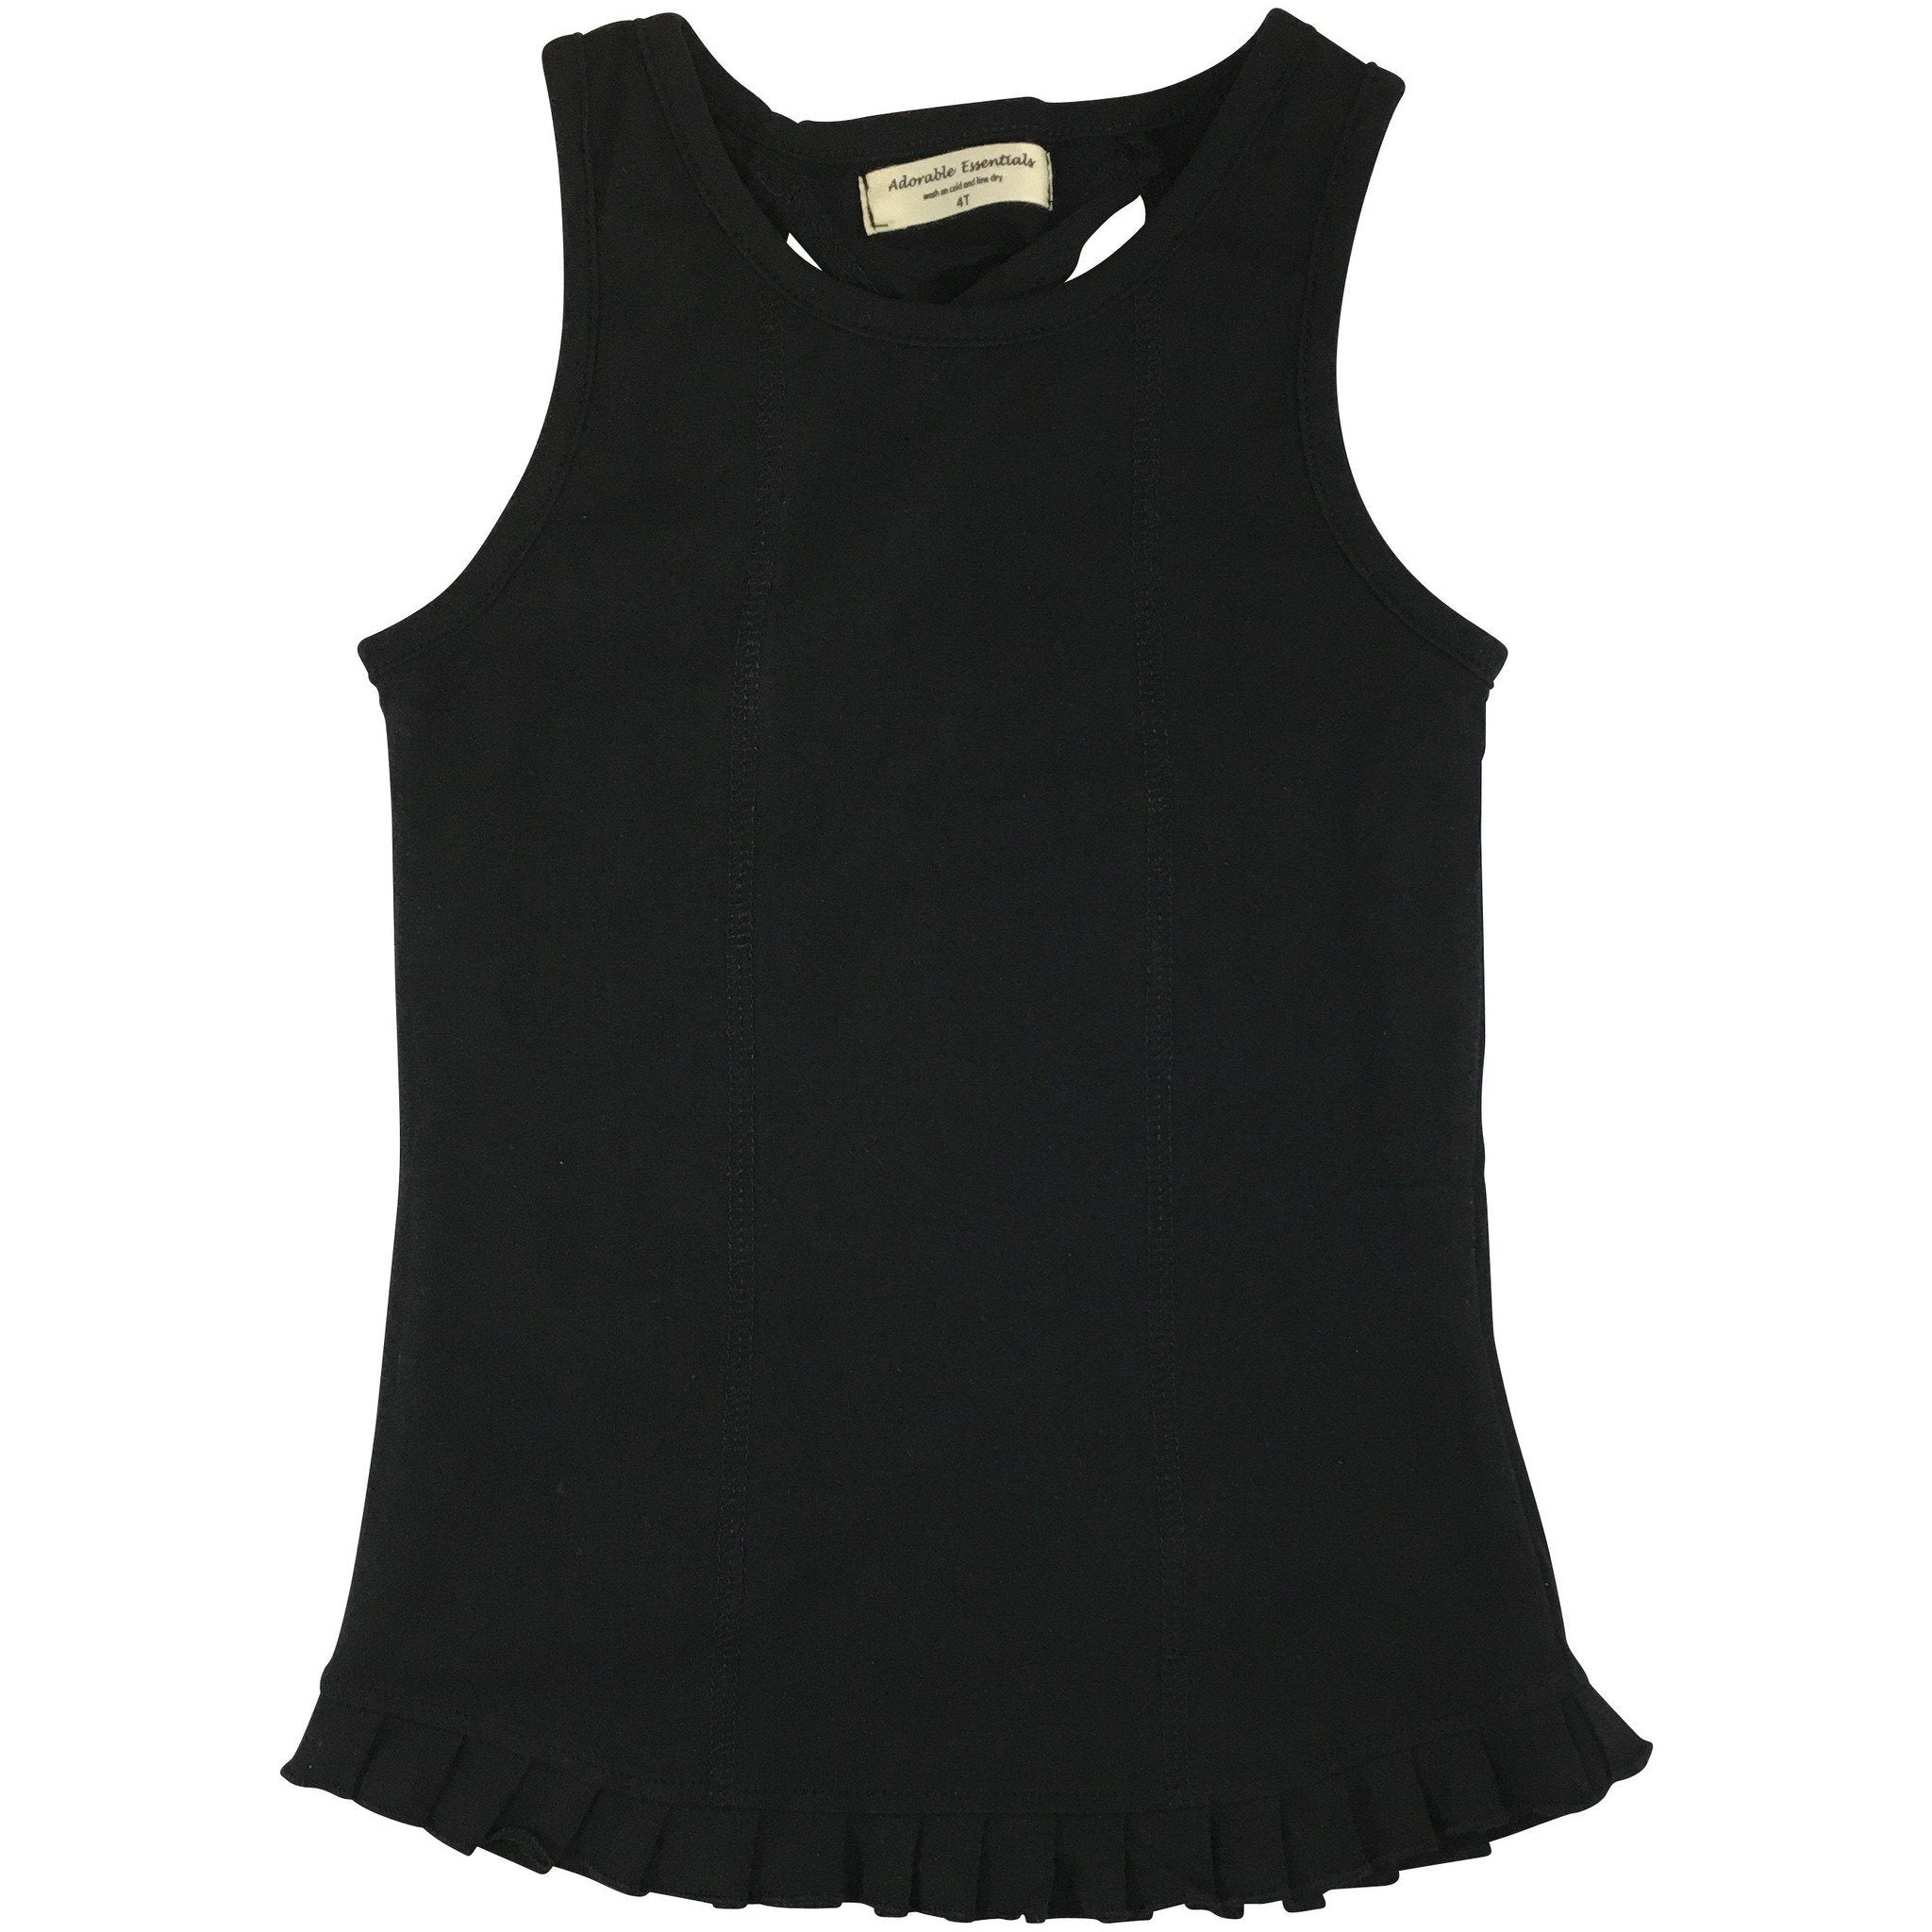 Adorable Essentials, Sleeveless Tanks,Sale,Adorable Essentials, LLC